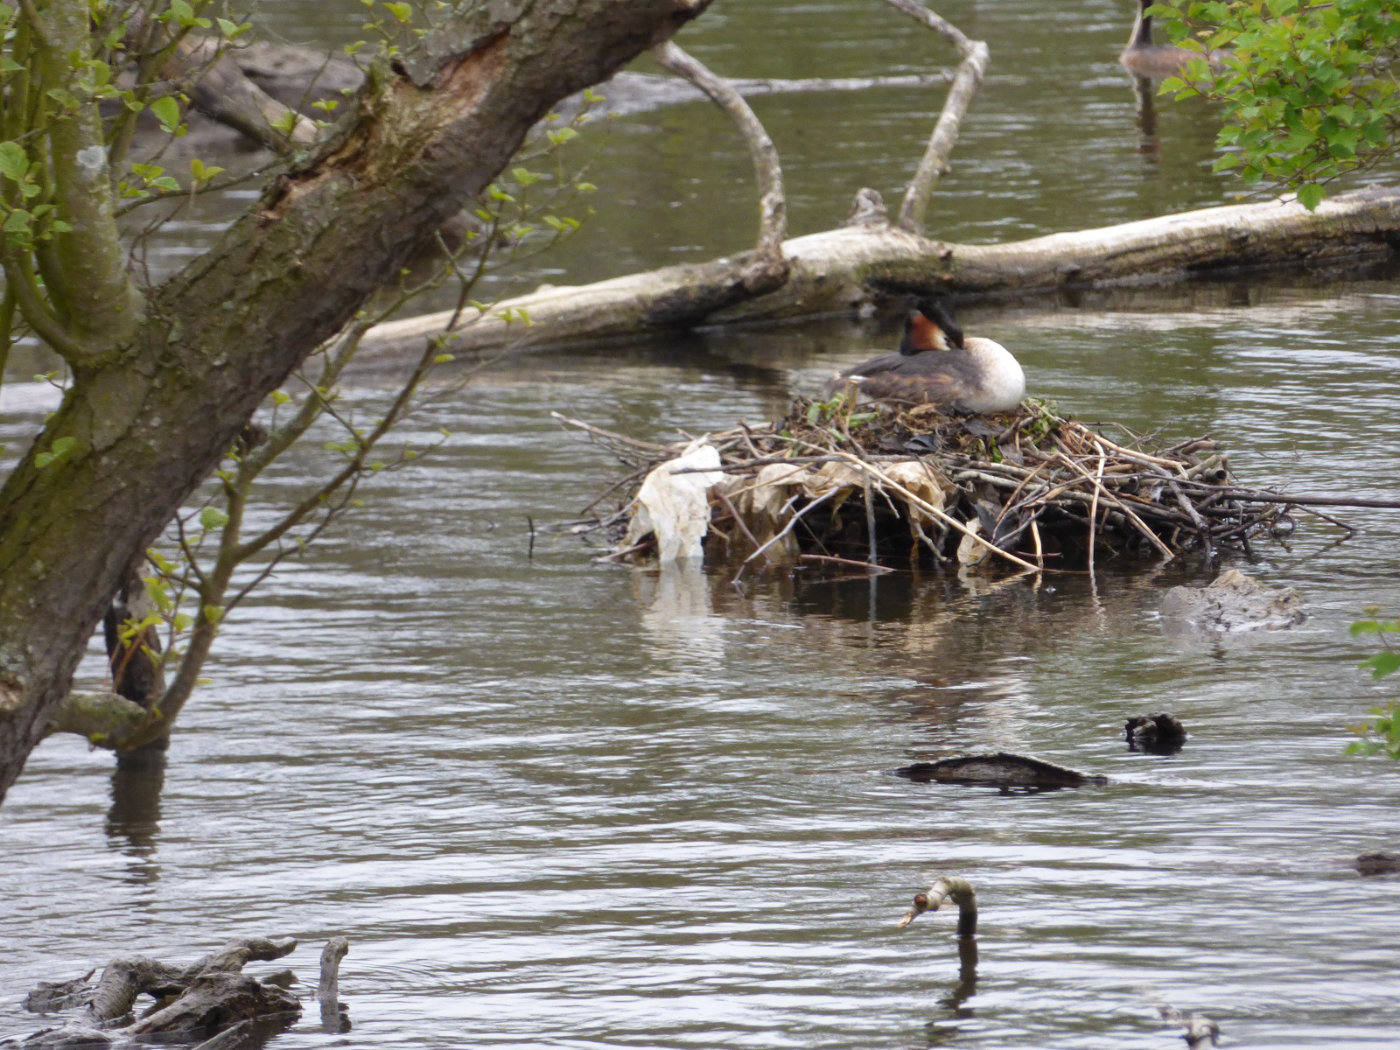 Grebe Nest on the Broads